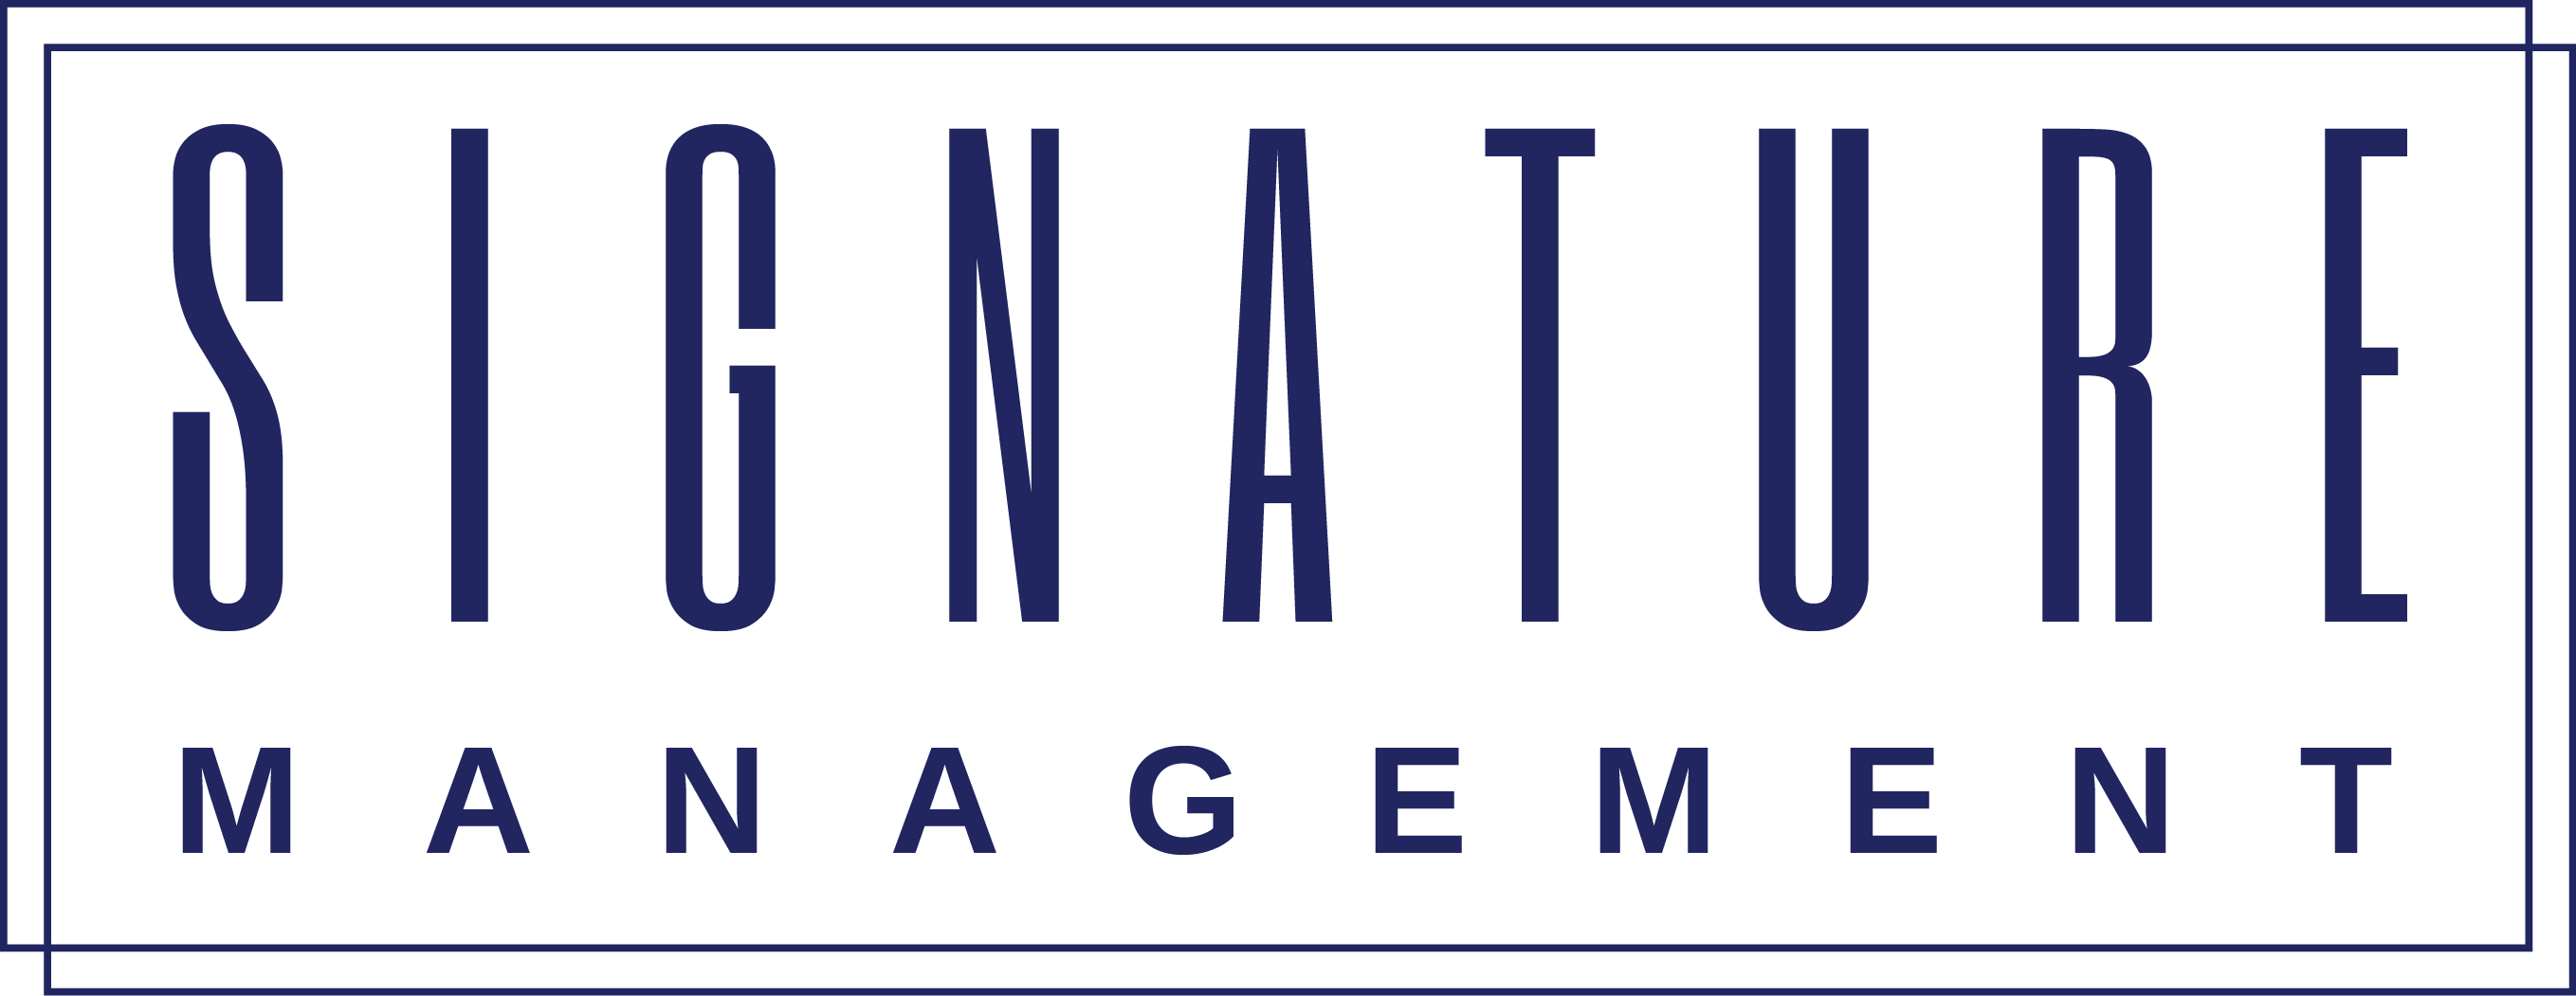 Signature Management, Inc